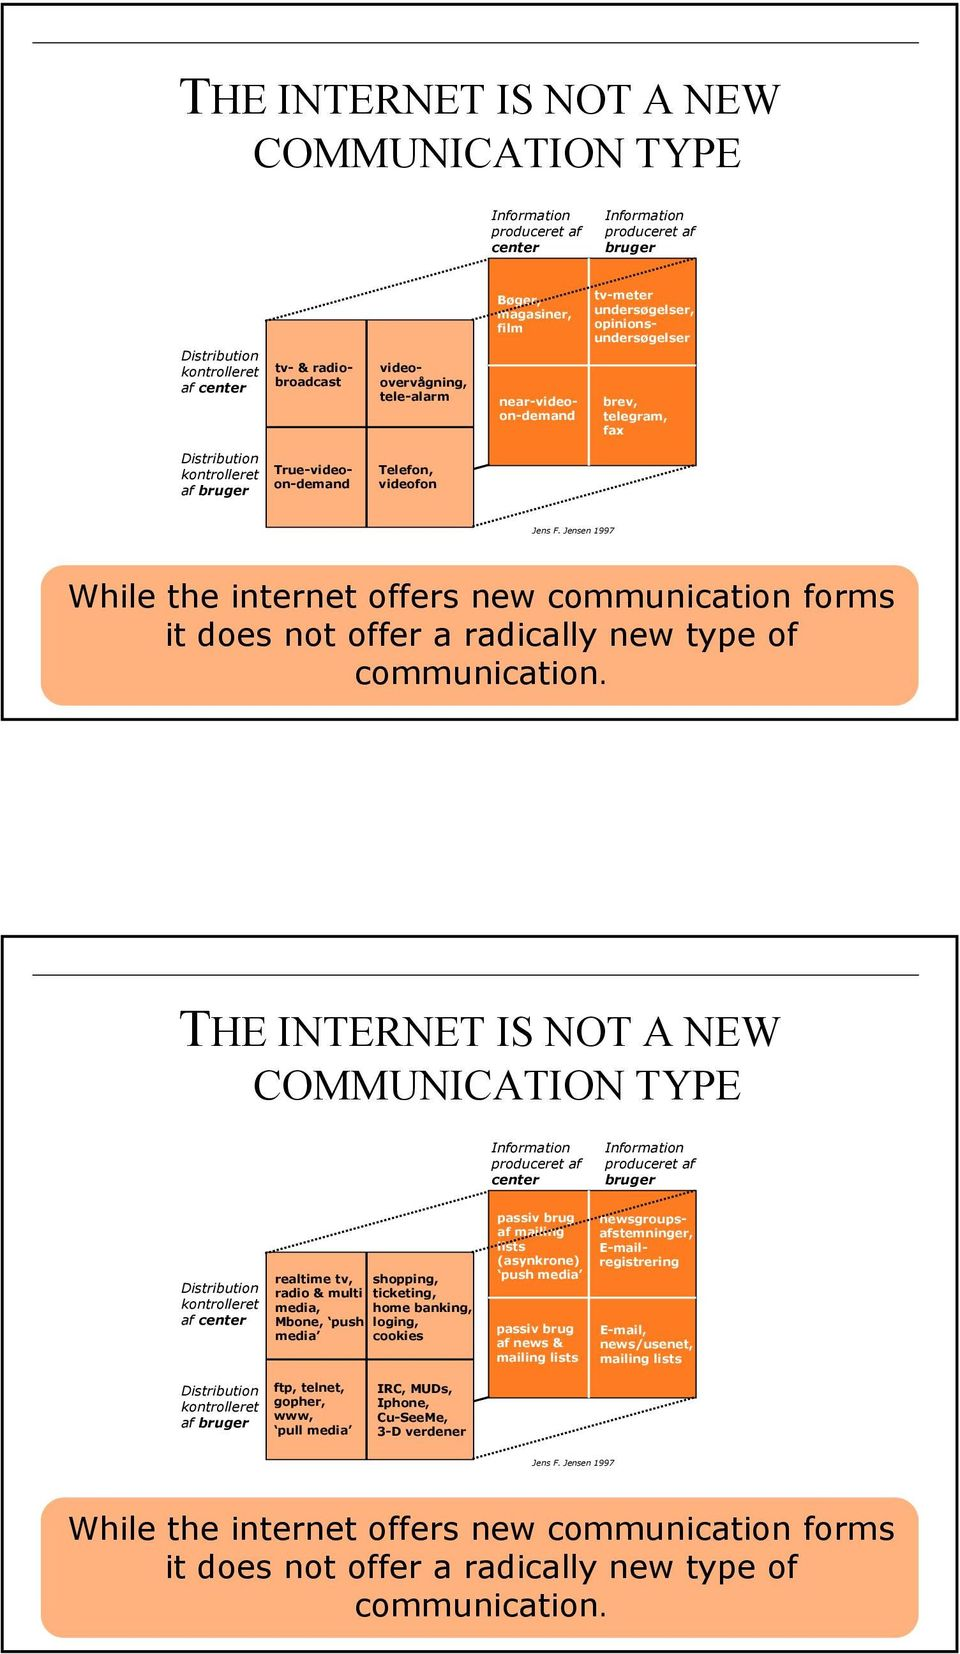 Jensen 1997 While the internet offers new communication forms it does not offer a radically new type of communication.